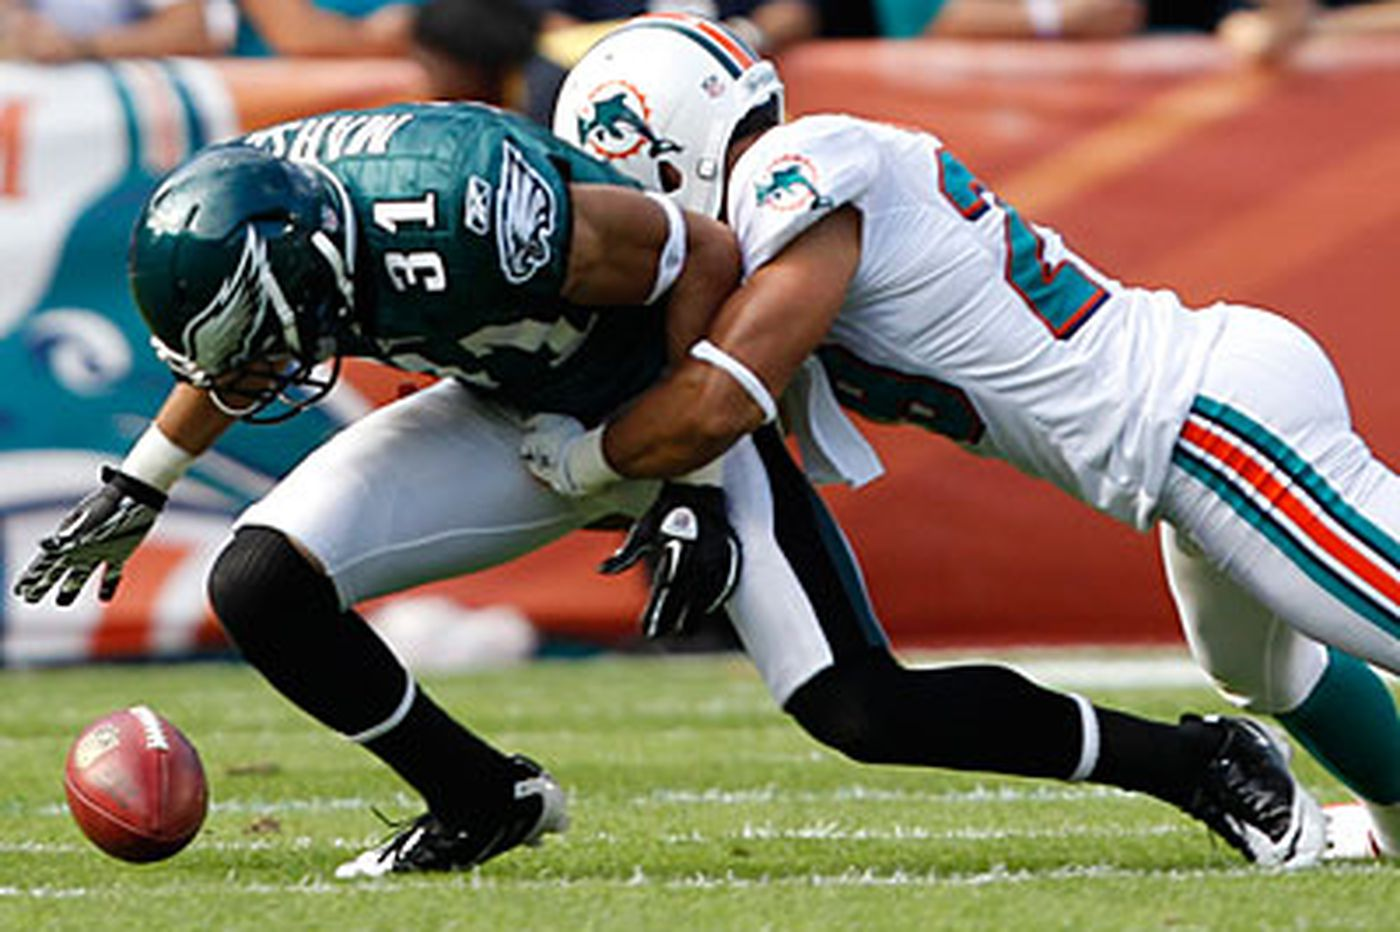 Eagles Notes: Eagles special-teams aim to cut down turnovers